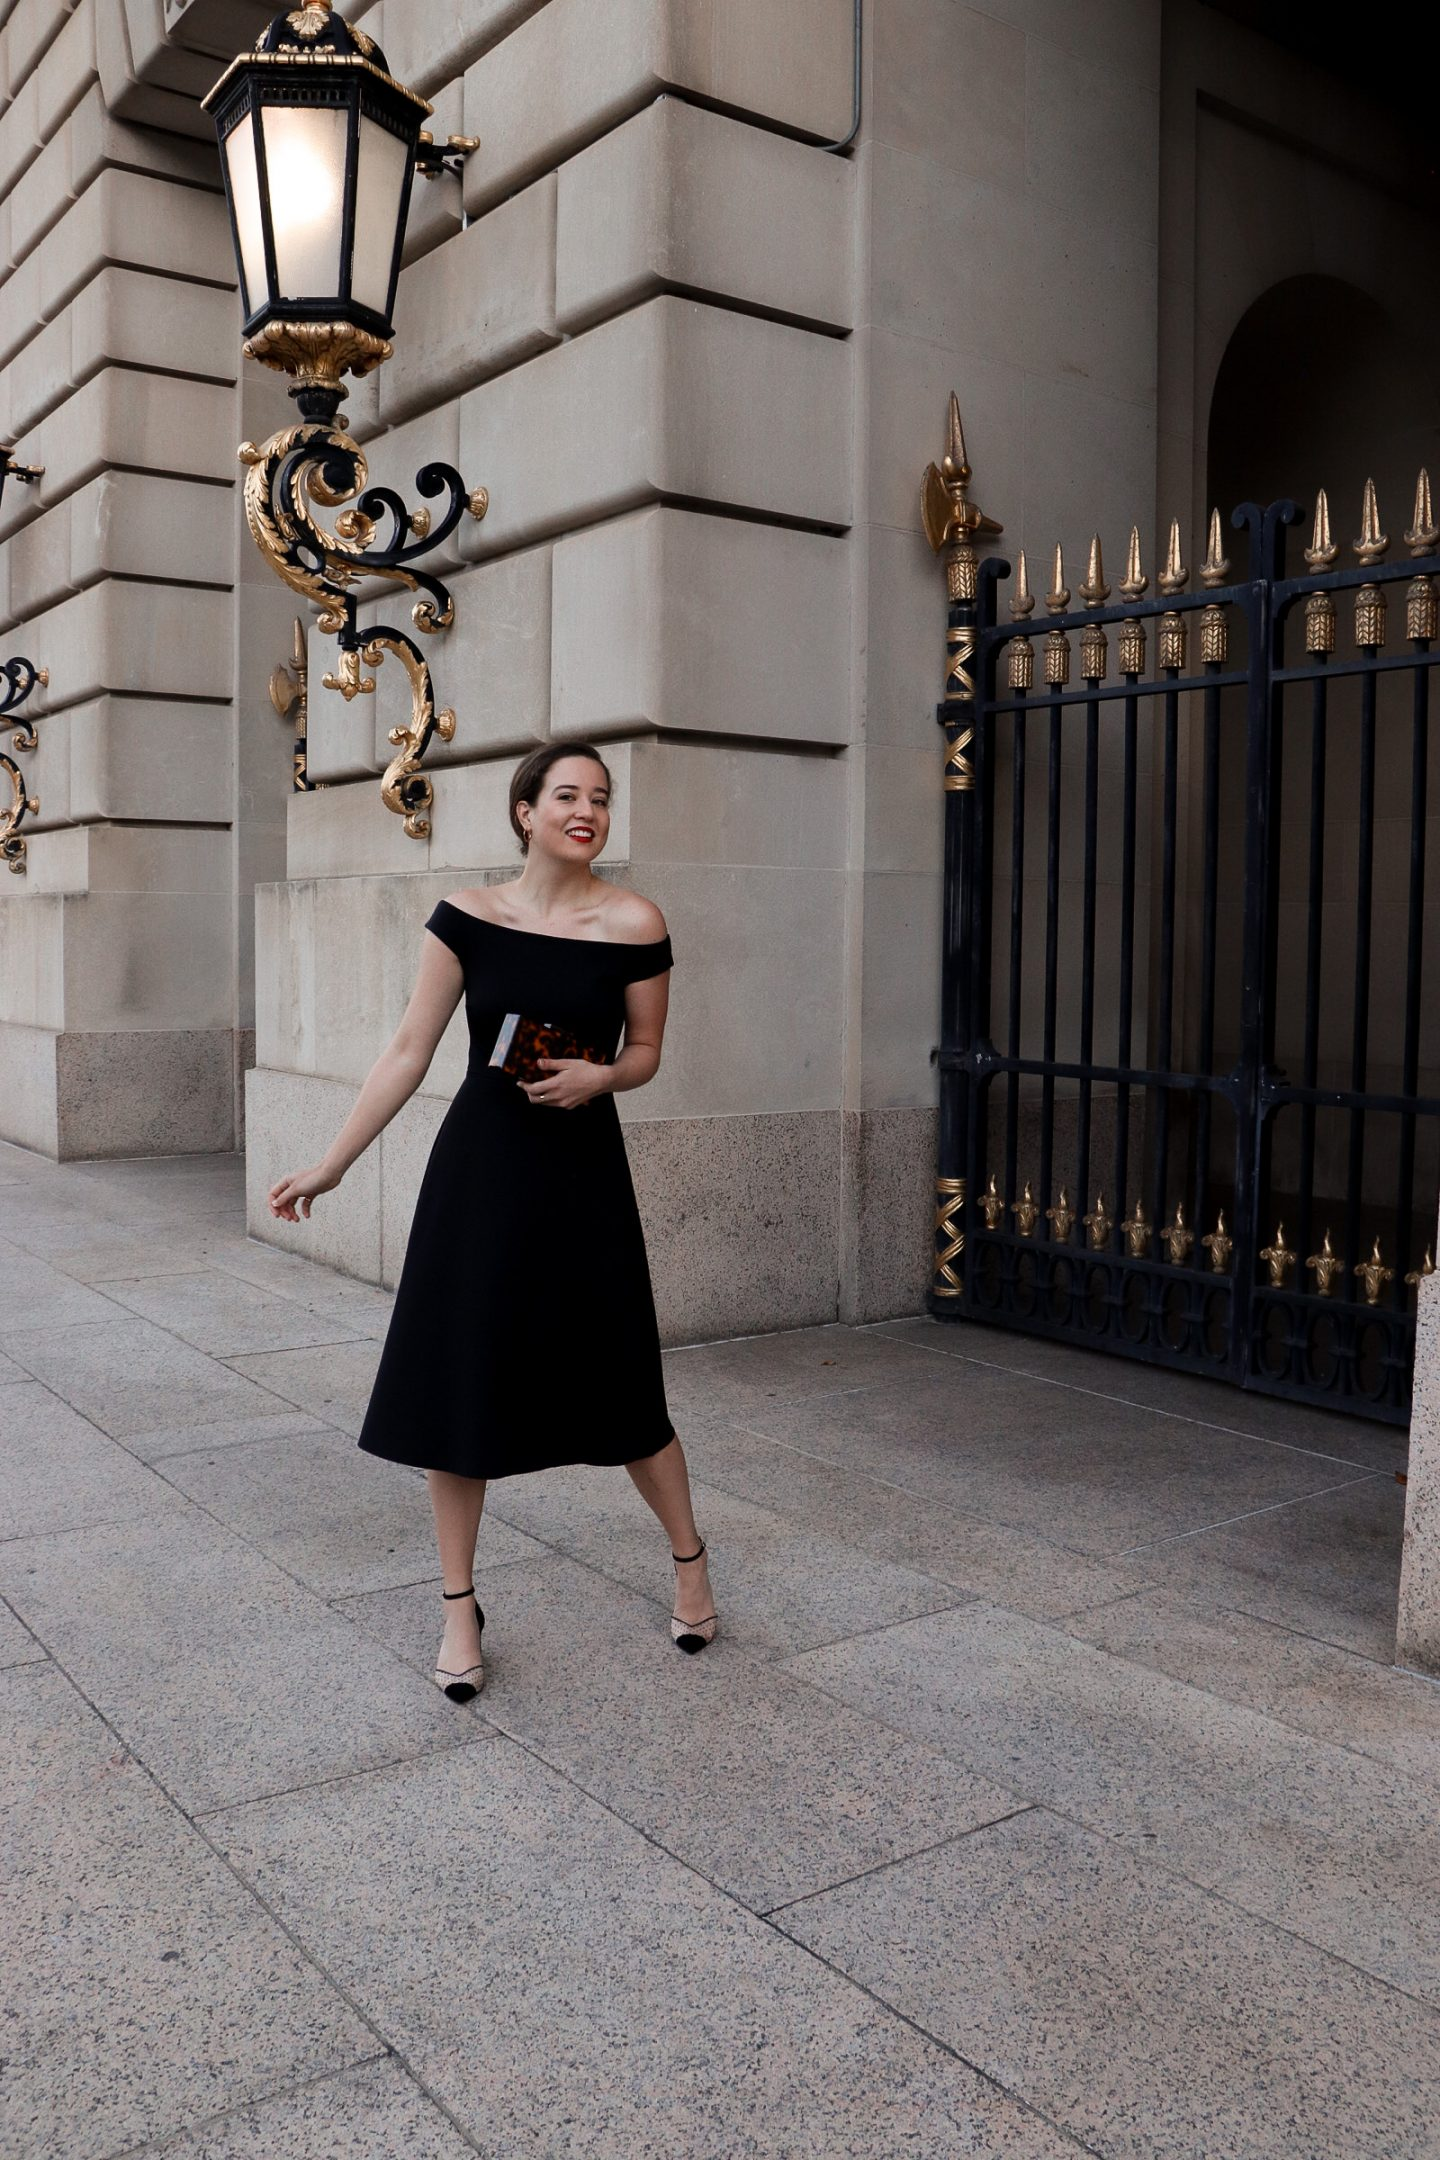 Audrey Hepburn, French Style and Why I Binge Watched Emily in Paris